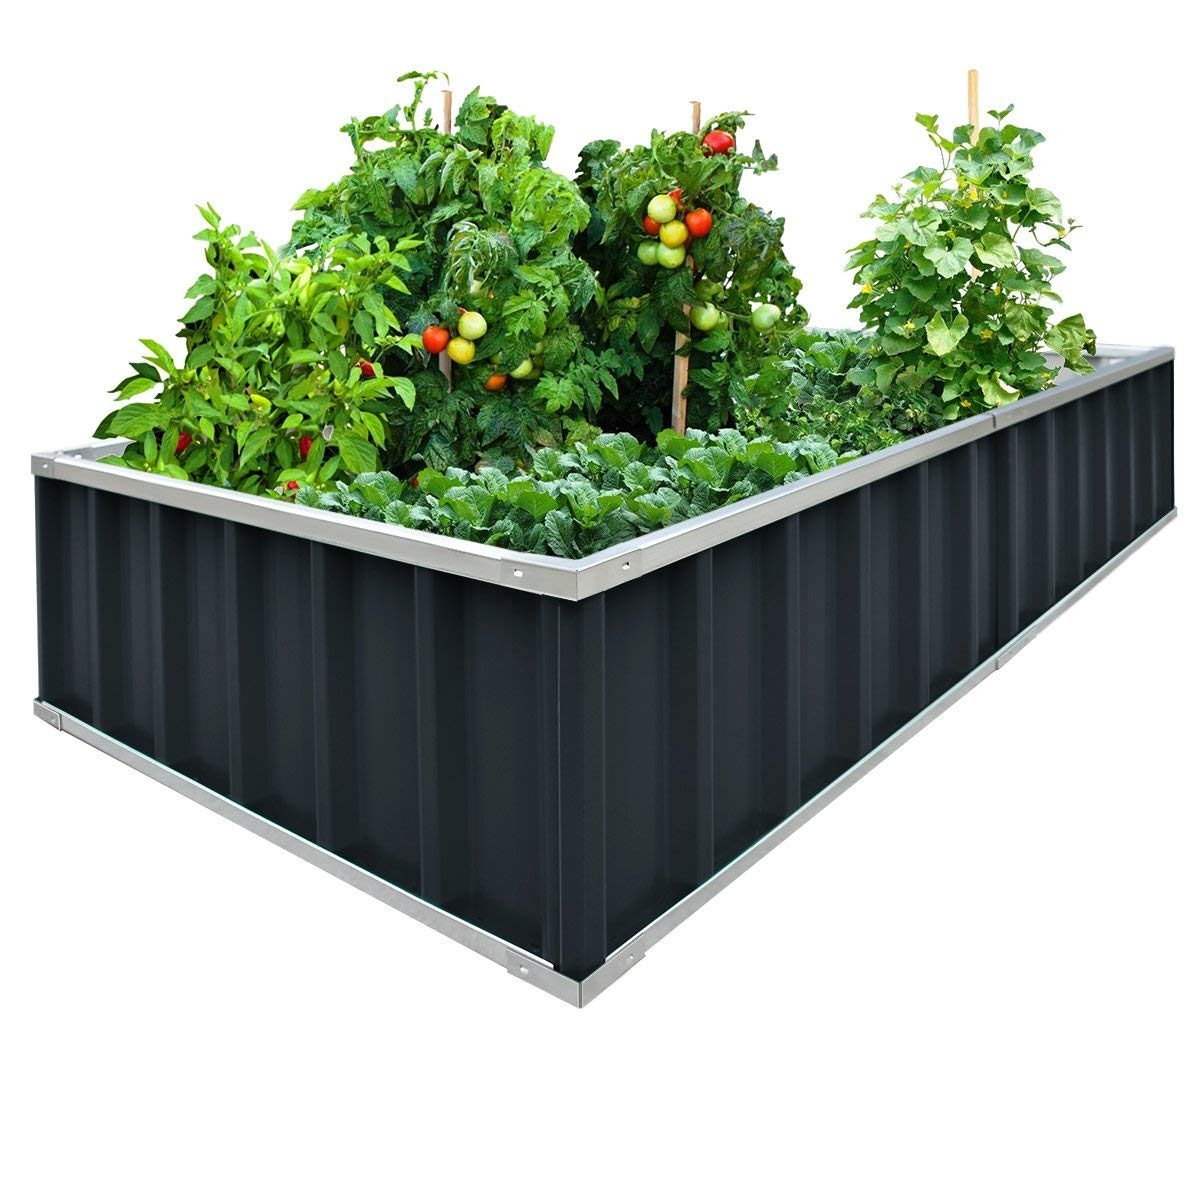 Kingbird Extra-Thick 2-Ply Reinforced Card Frame Raised Bed Garden